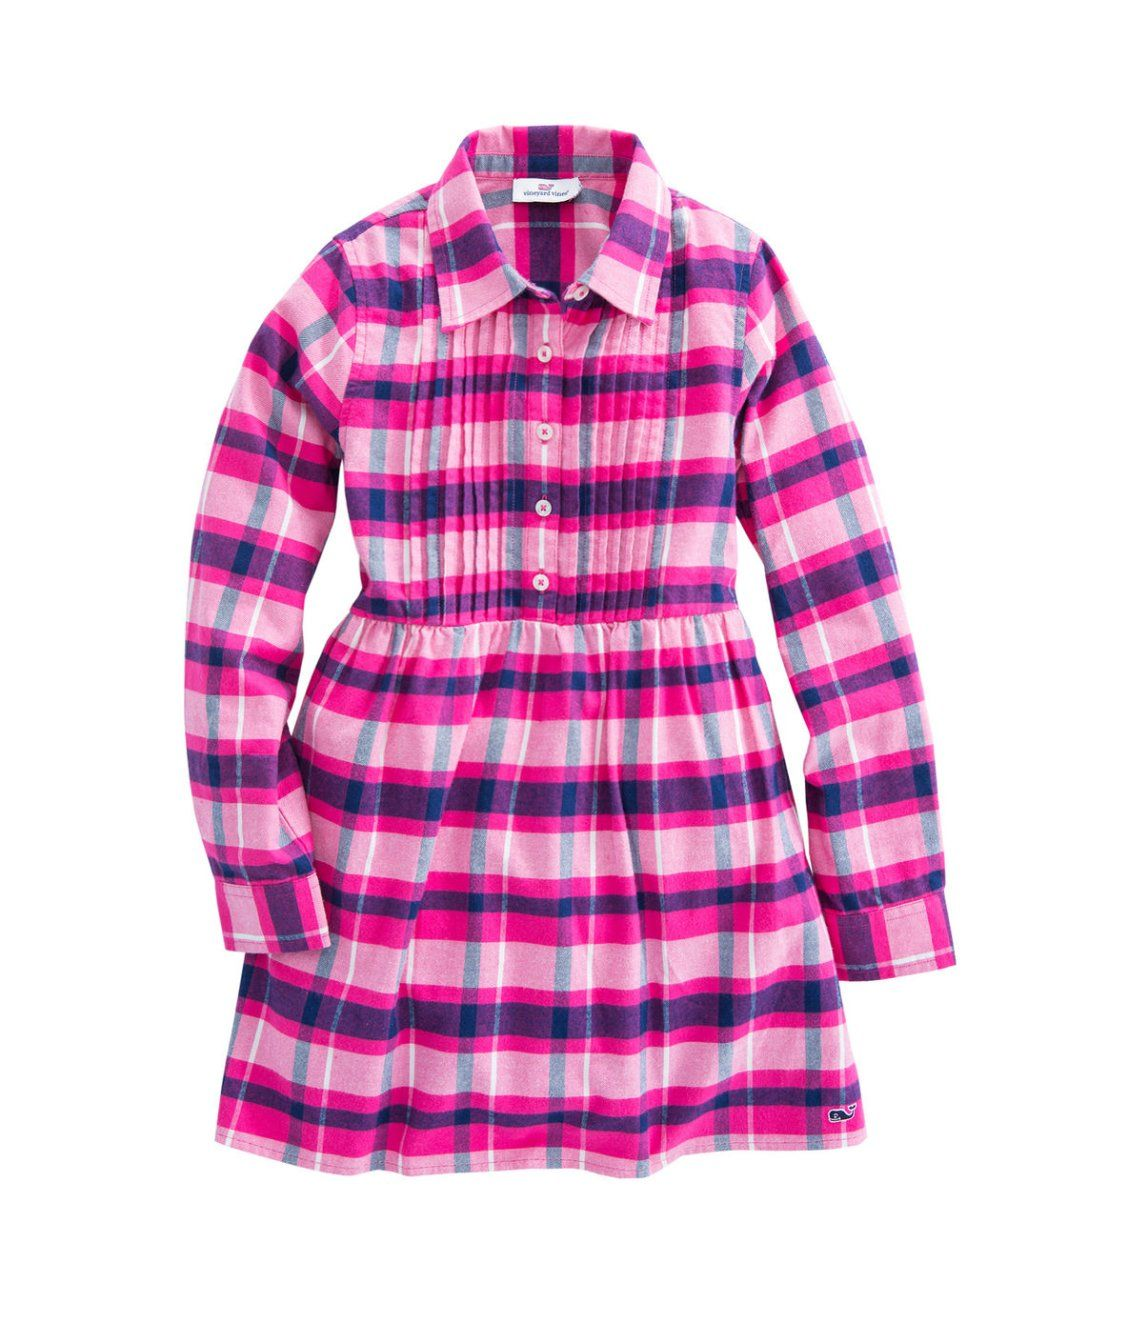 Flannel shirts at kohl's  Girls Plaid Flannel Shirt Dress  new arrivals  Pinterest